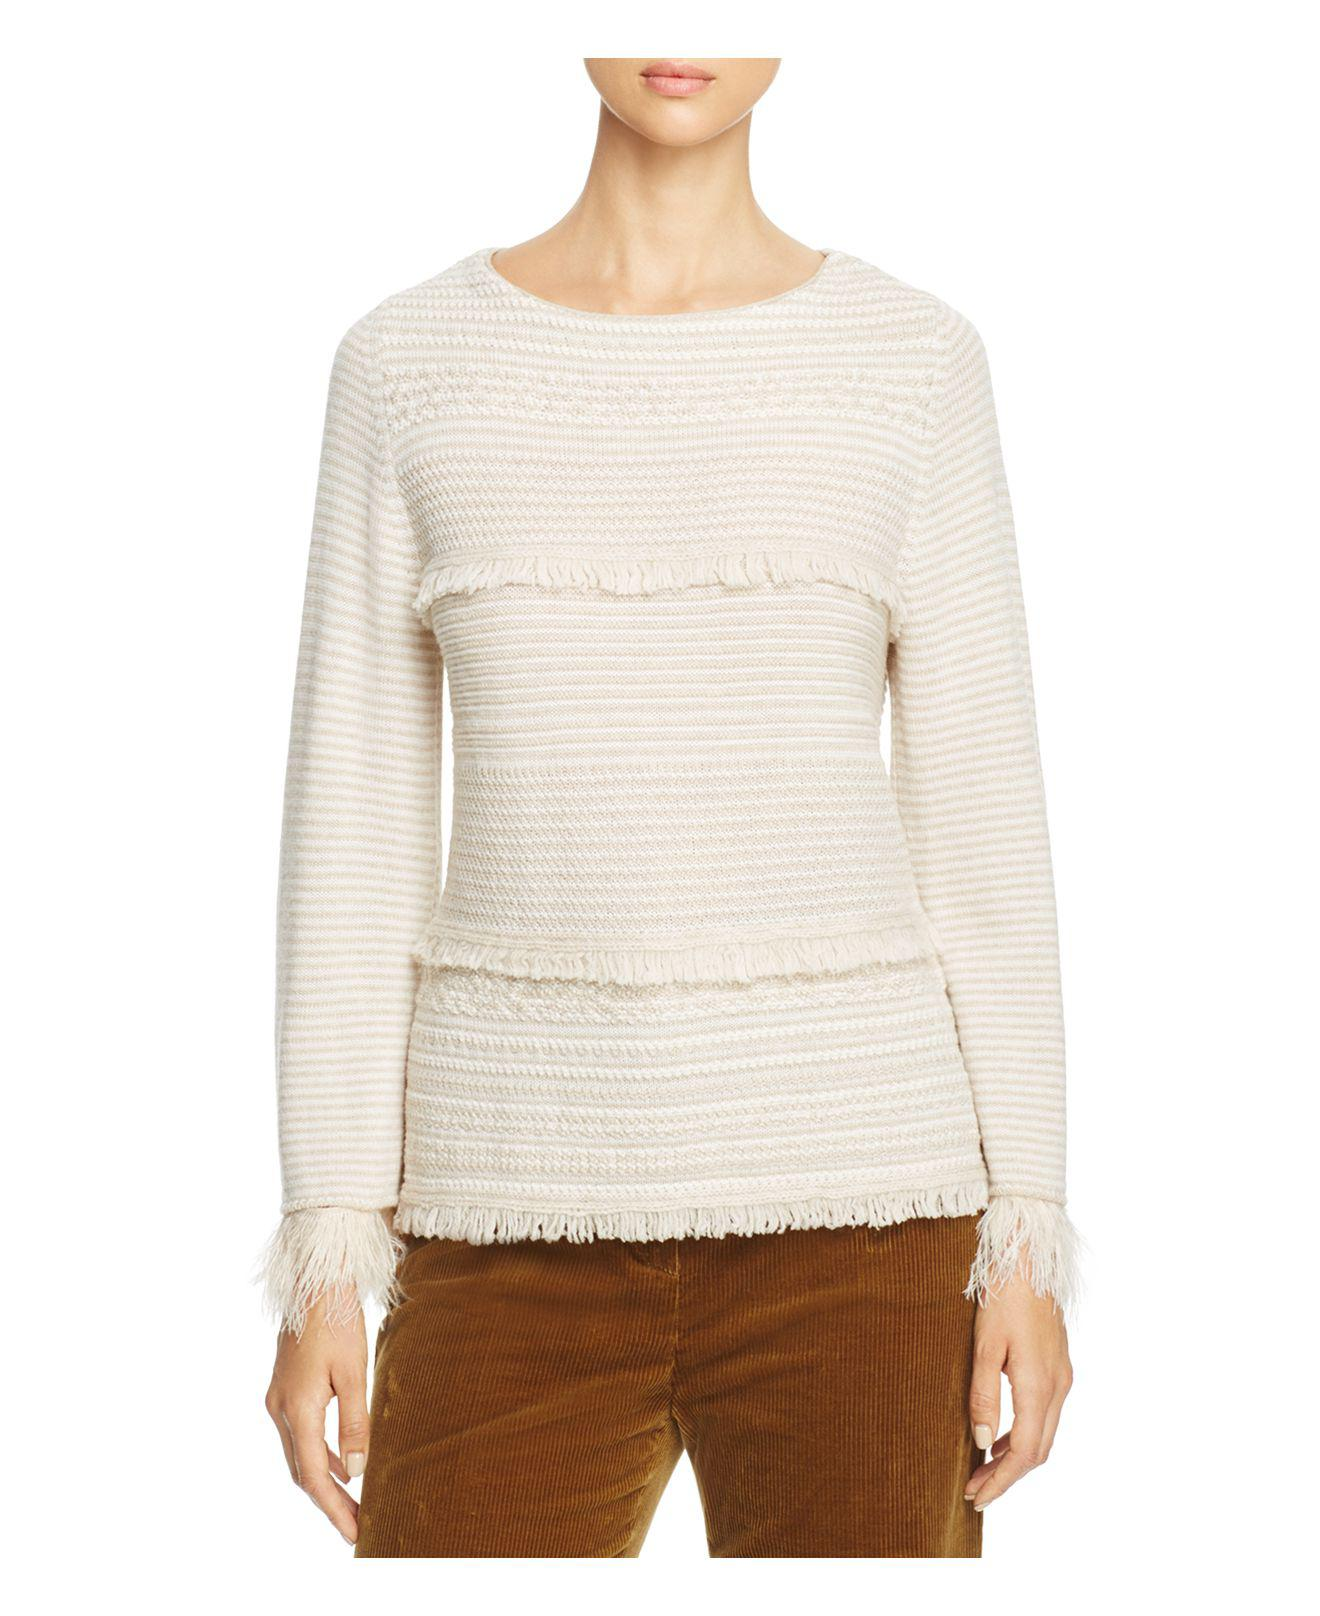 feather trimmed sweater - Pink & Purple Max Mara Limited Edition For Sale 100% Authentic Sale Online Outlet Store For Sale I0b3pIjC0f